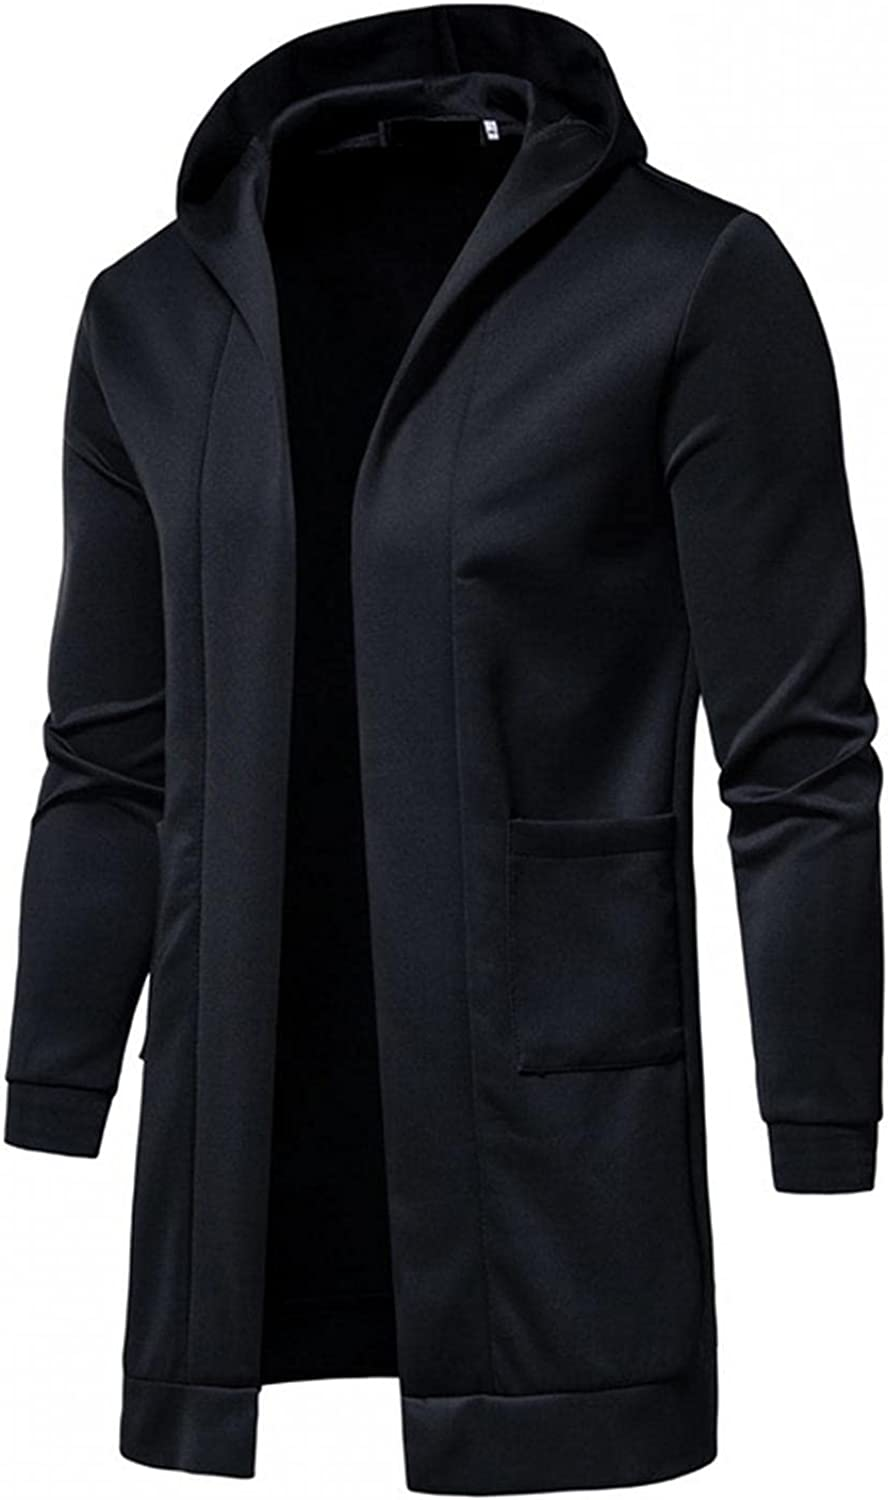 Aayomet Men's Cardigan Sweatshirts Solid Tops Long Sleeve Casual Hooded Pullover Shirts Blouses Coats Jackets for Men